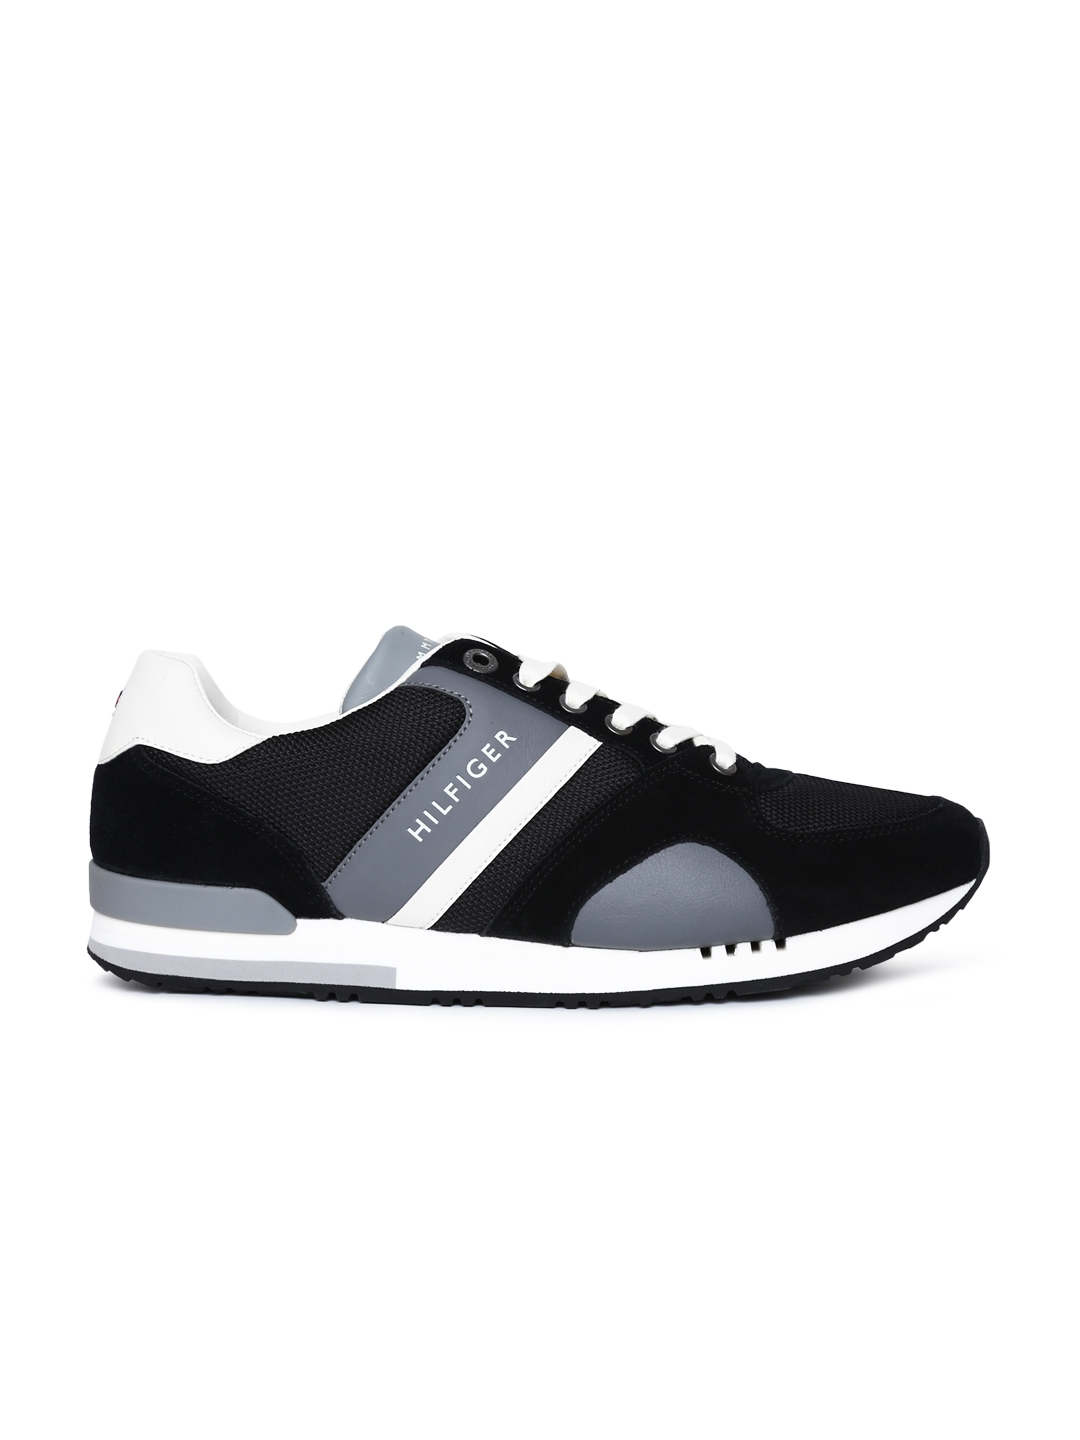 0971099ef Tommy Hilfiger Men Black   Grey New Iconic Sporty Runner Sneakers